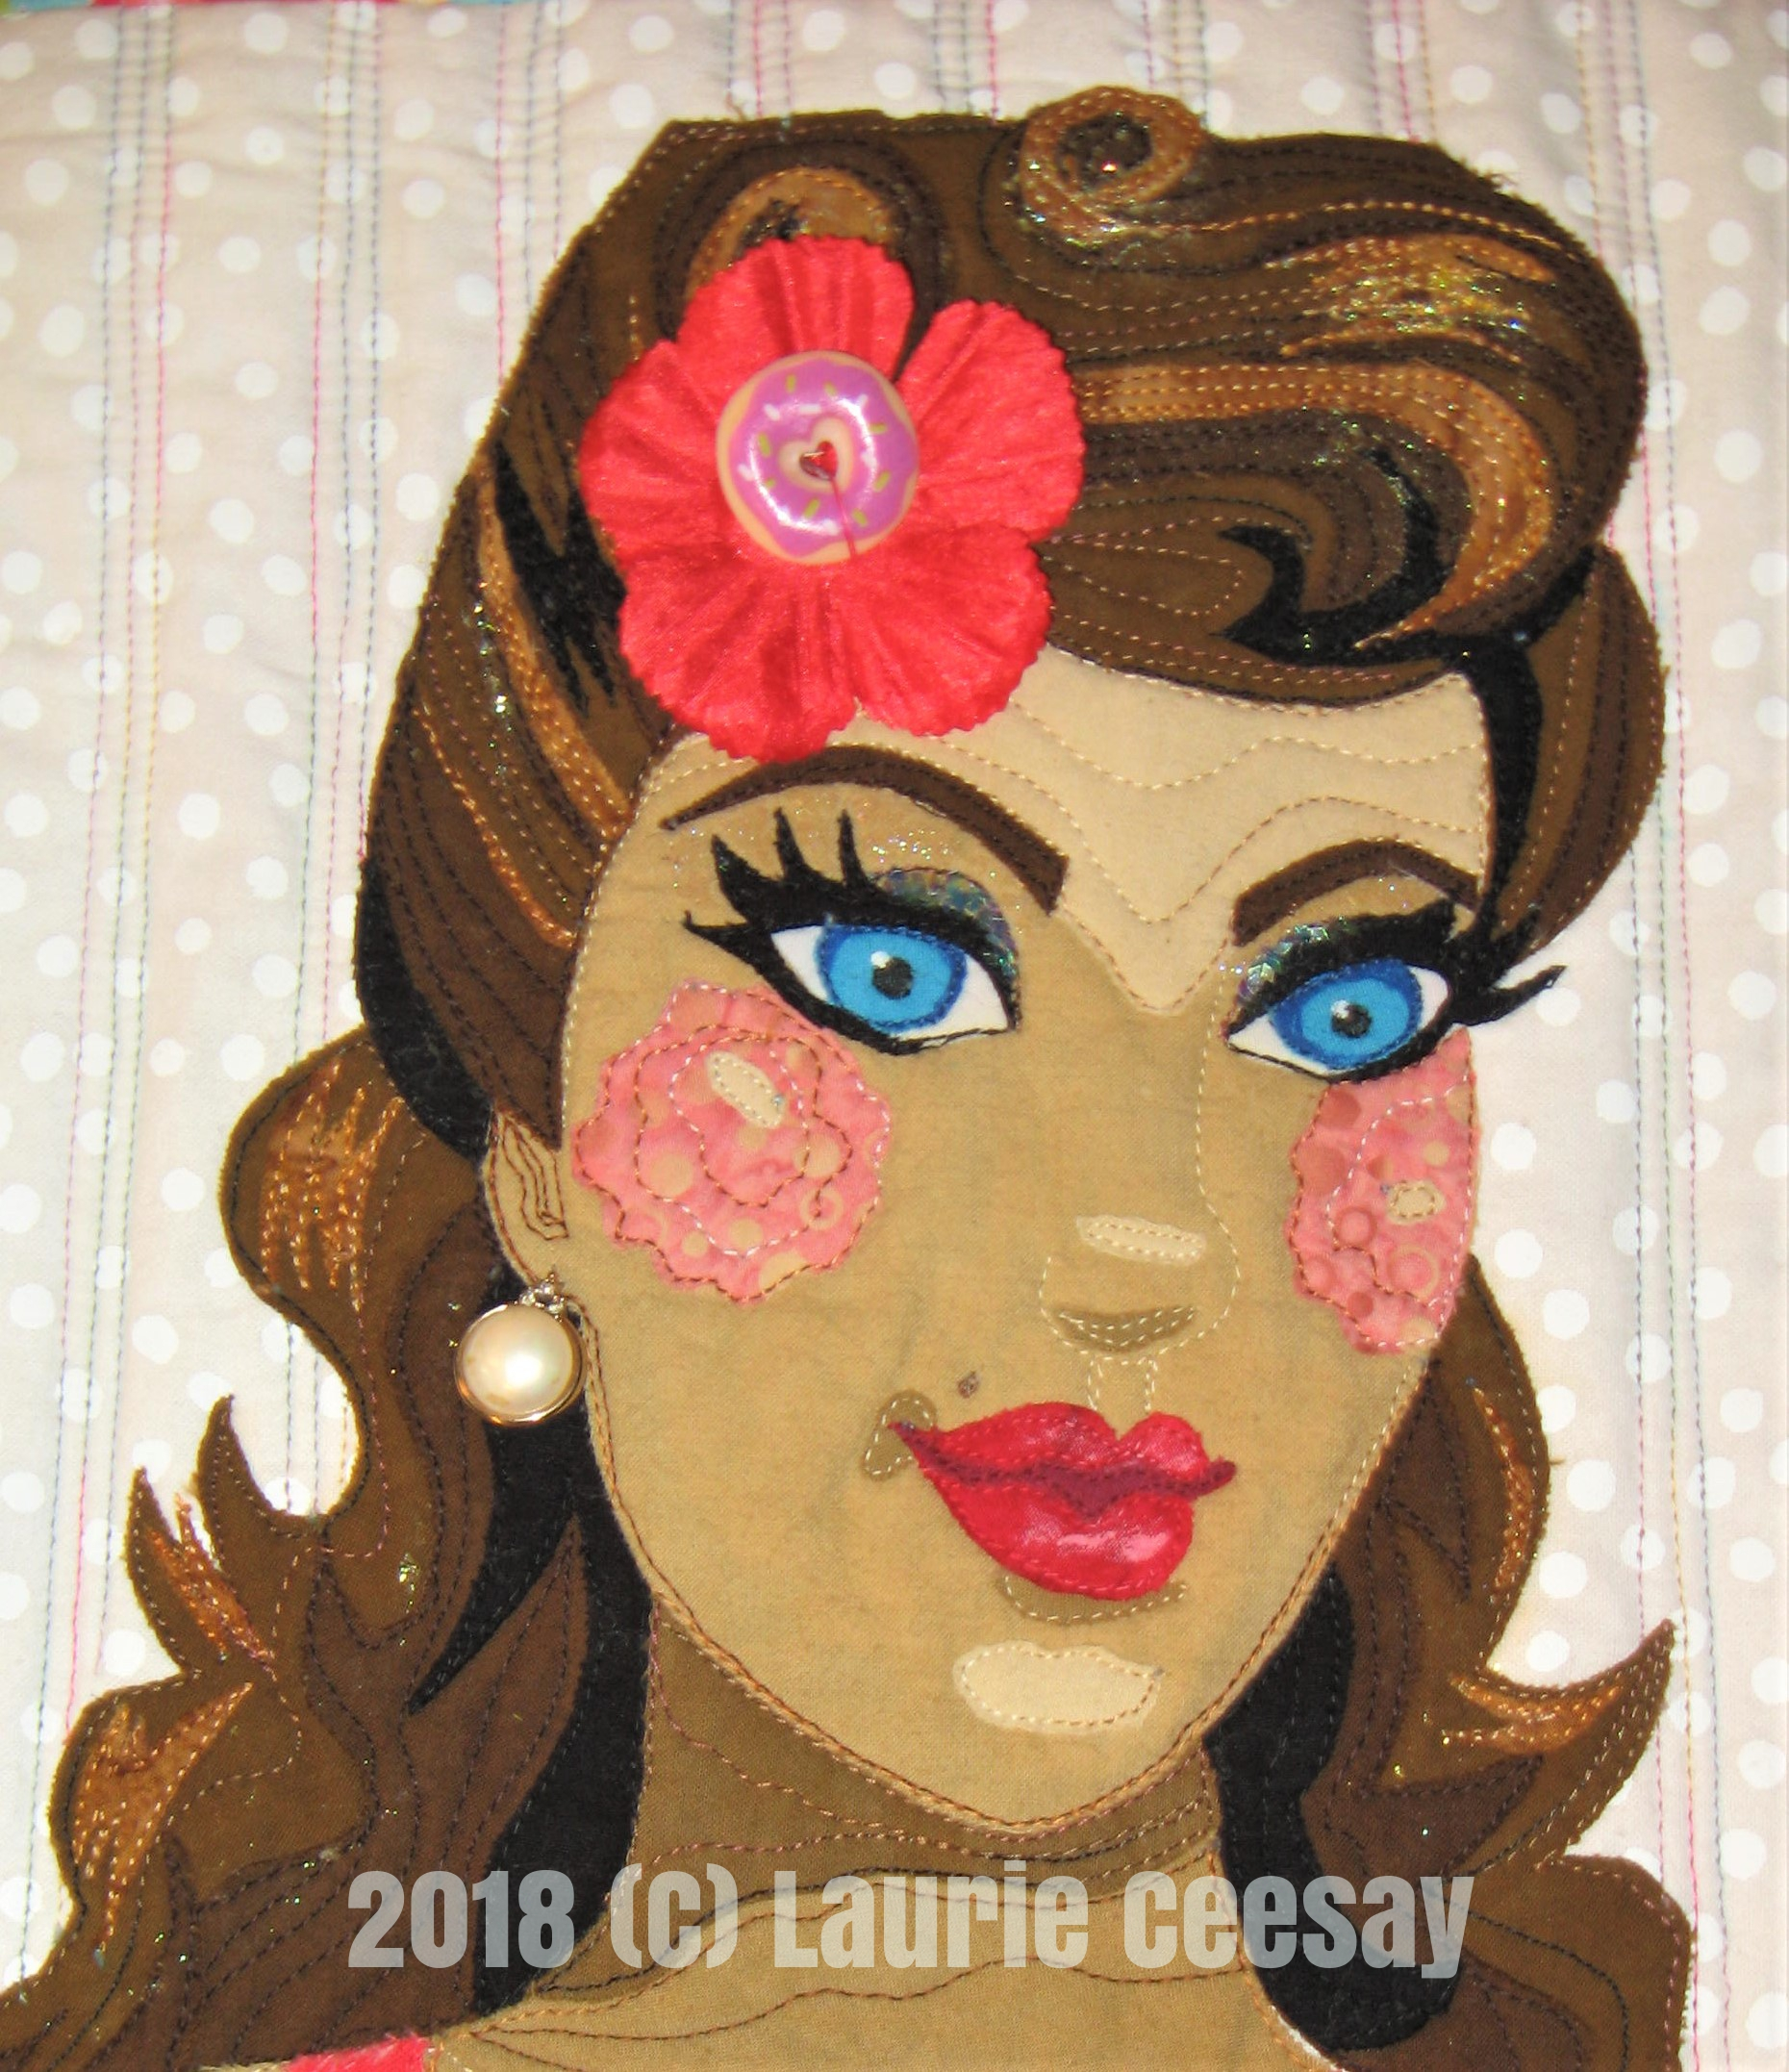 In the face detail the use of glitter nail polish is used in the hair and brow bones. Chunky turquoise glitter is applied to the eye lids. A red flower from a dollar store Hawaiian lei with a cute donut button from Joann Fabrics in the center adds pin up vintage flair!. I sewed donut buttons to the four corners of the quilt as well. I used a vintage earring of my Mother's for Betty's earring.